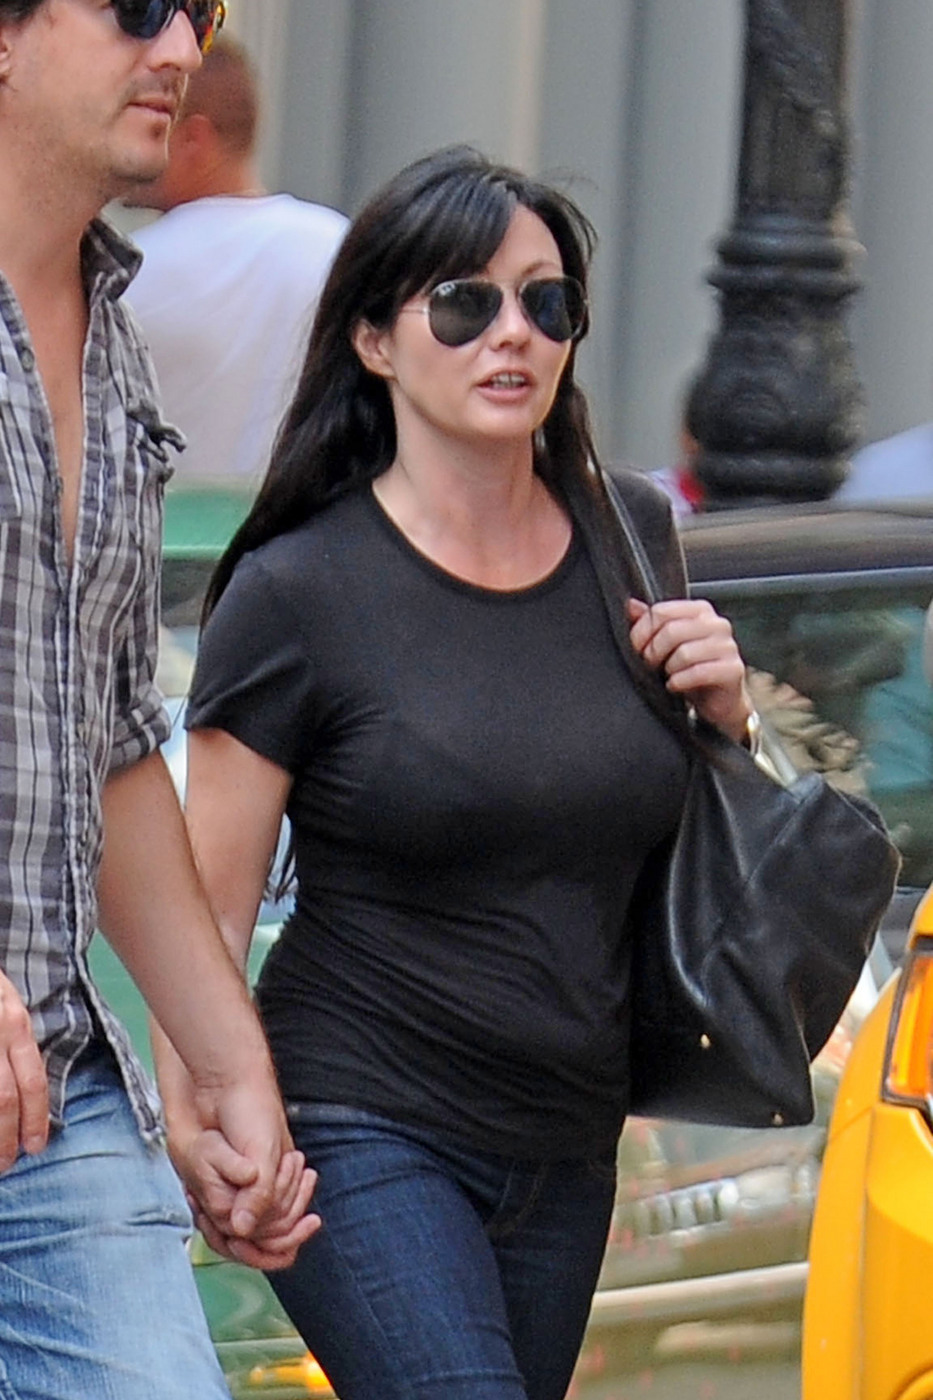 Shannen Doherty - Actress, Television Producer - Biography.com